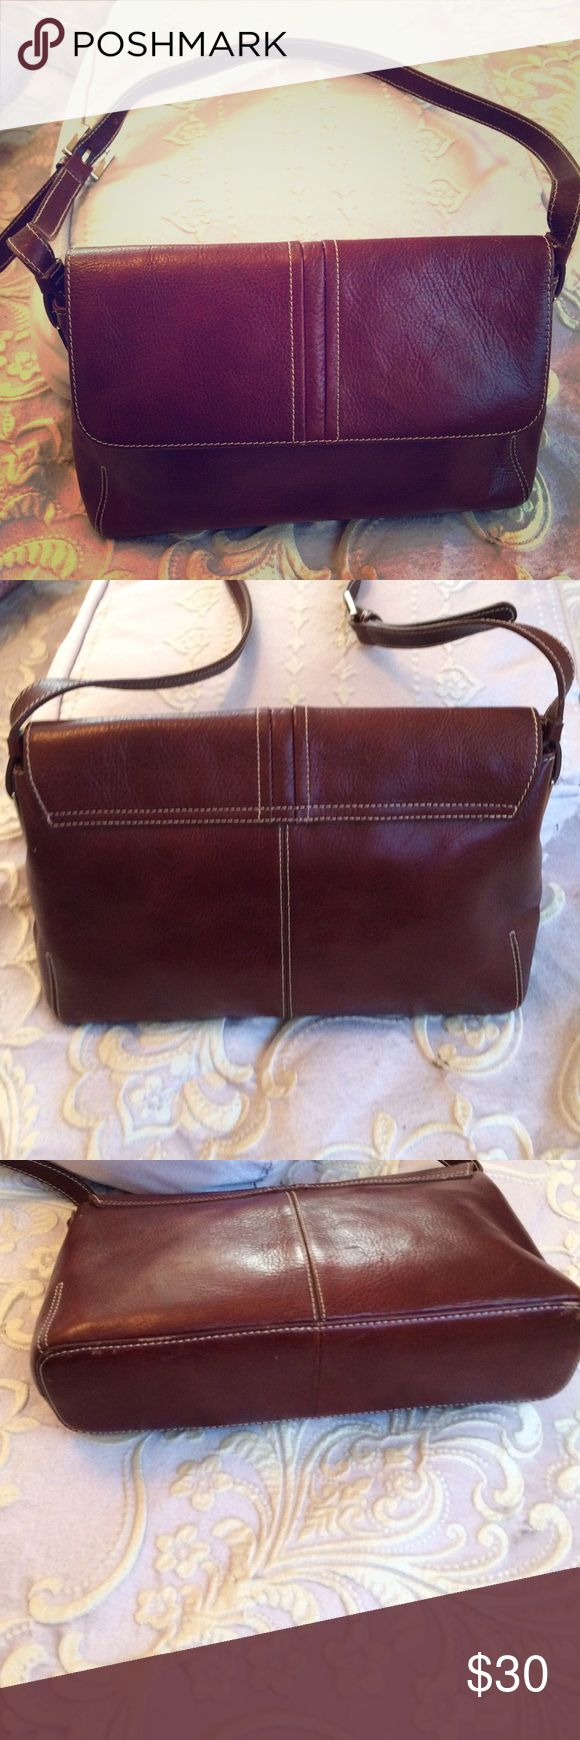 Vintage ETIENNE AIGNER Genuine Leather  Purse Vintage ETIENNE AIGNER Genuine Leather  Purse good vintage condition... color-Cordovan Etienne Aigner Bags Shoulder Bags